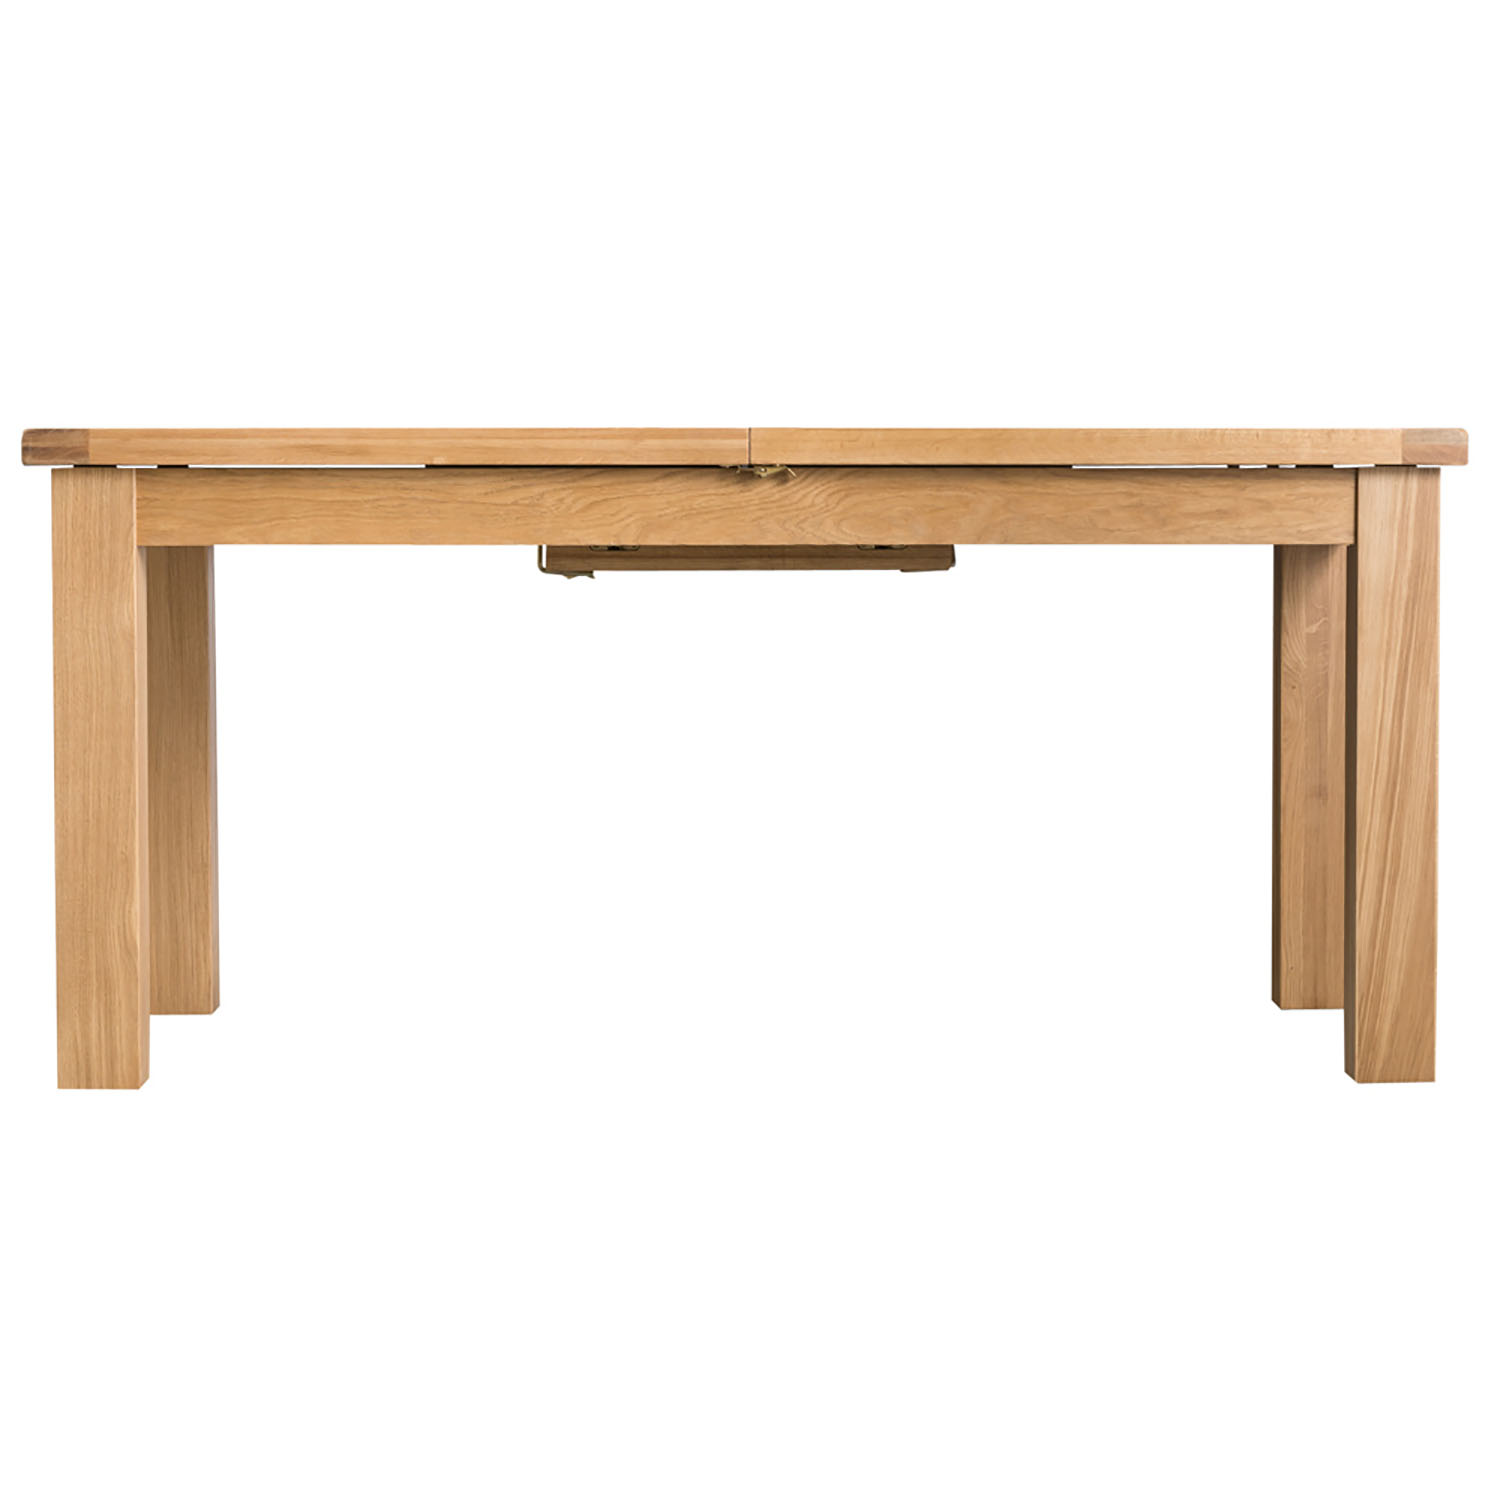 Oakley Rustic 170-220cm Ext Dining Table